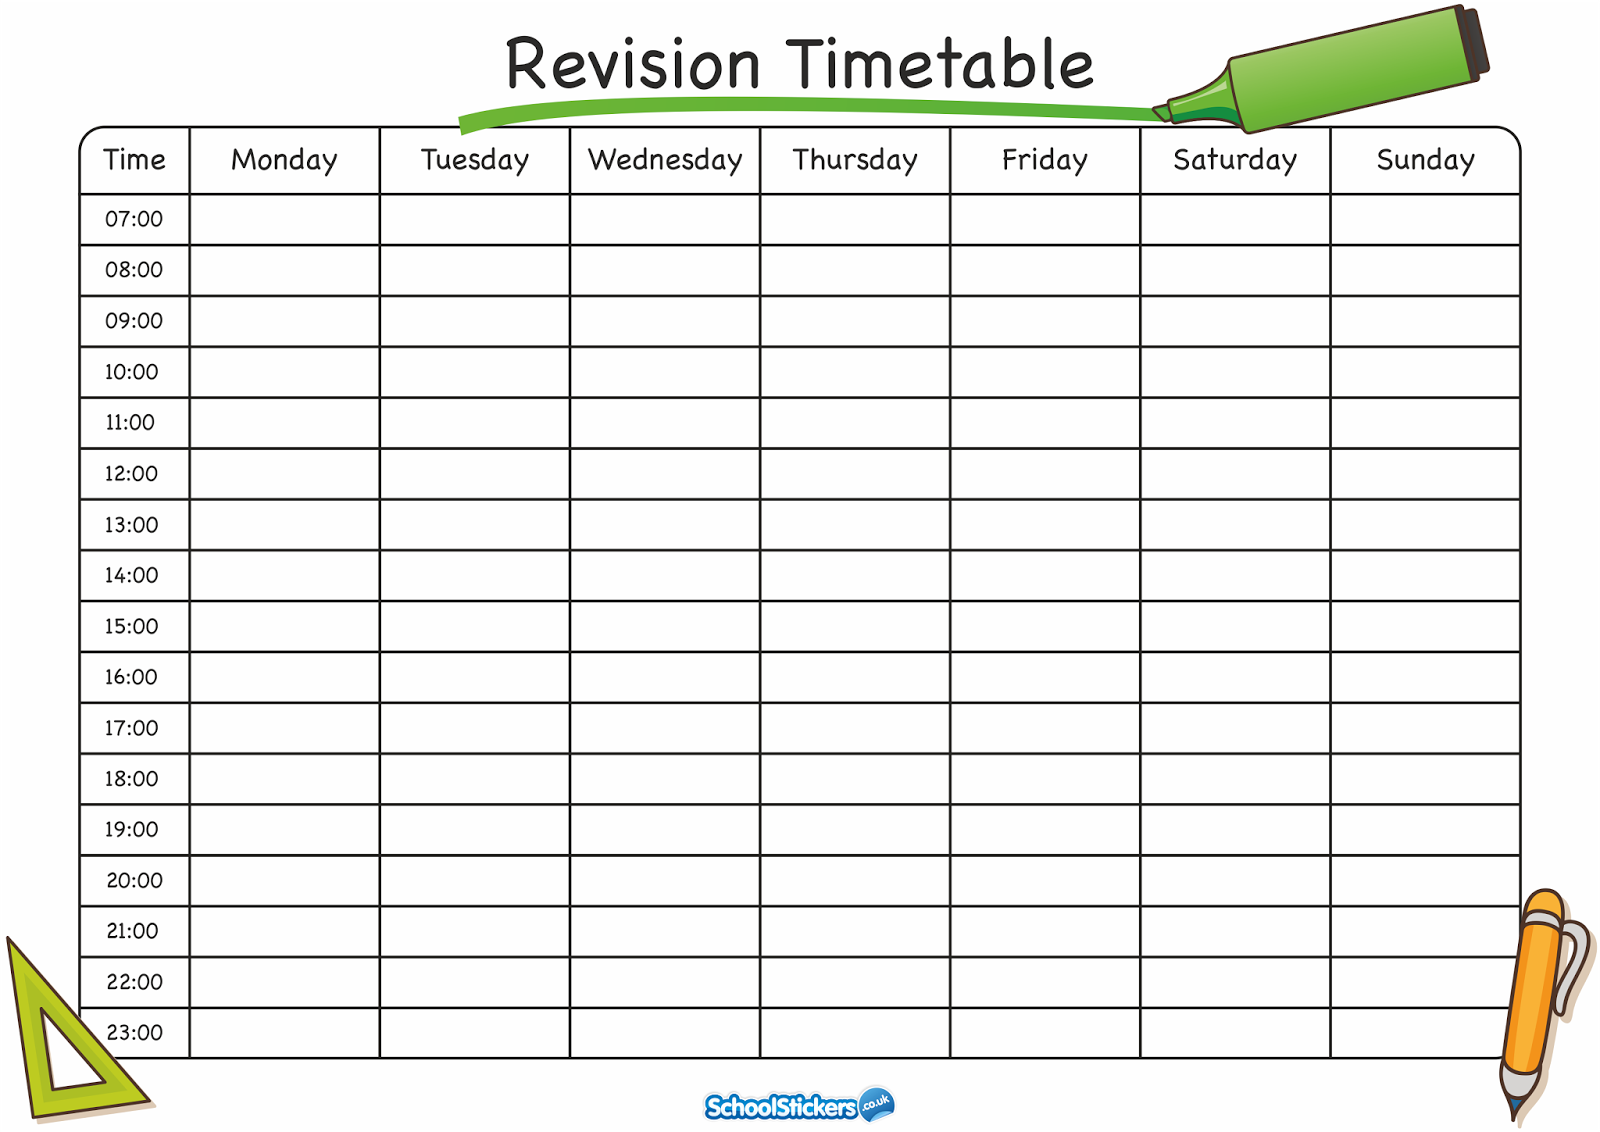 Timetable templates for school in excel format excel for Blank revision timetable template